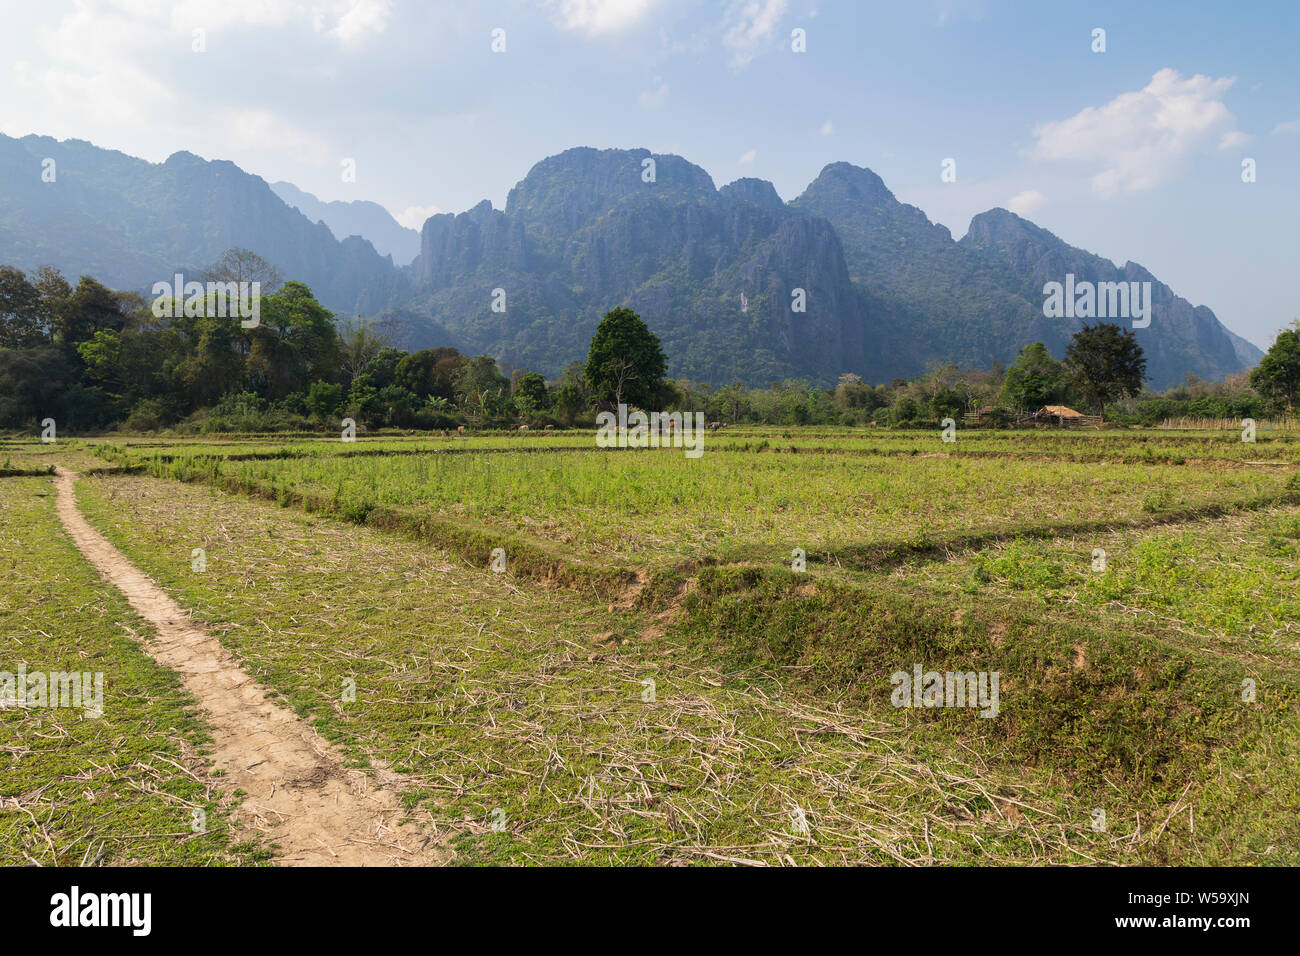 Beautiful view of farmland and karst limestone mountains near Vang Vieng, Vientiane Province, Laos, on a sunny day. Stock Photo